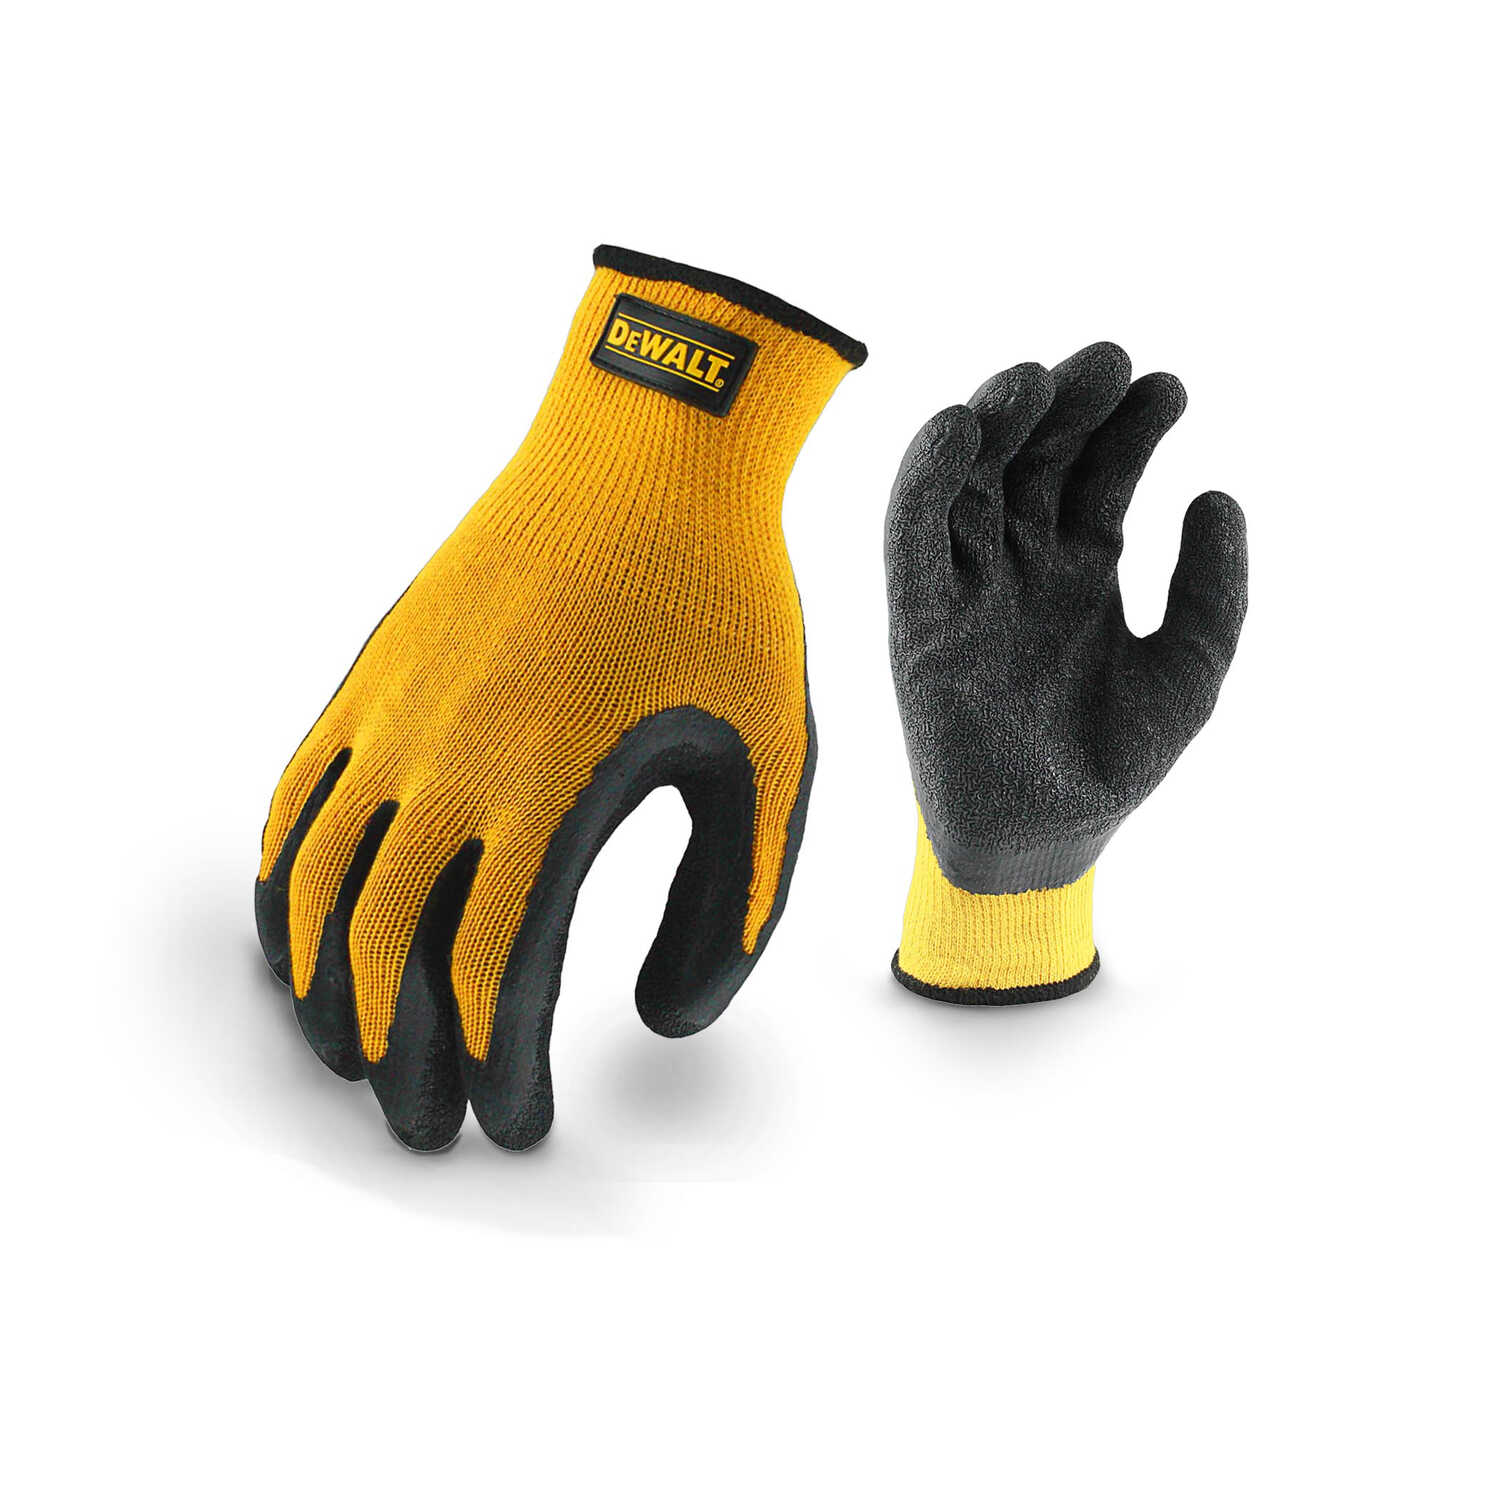 DeWalt  Radians  Unisex  Rubber  Grip  Gloves  Black/Yellow  M